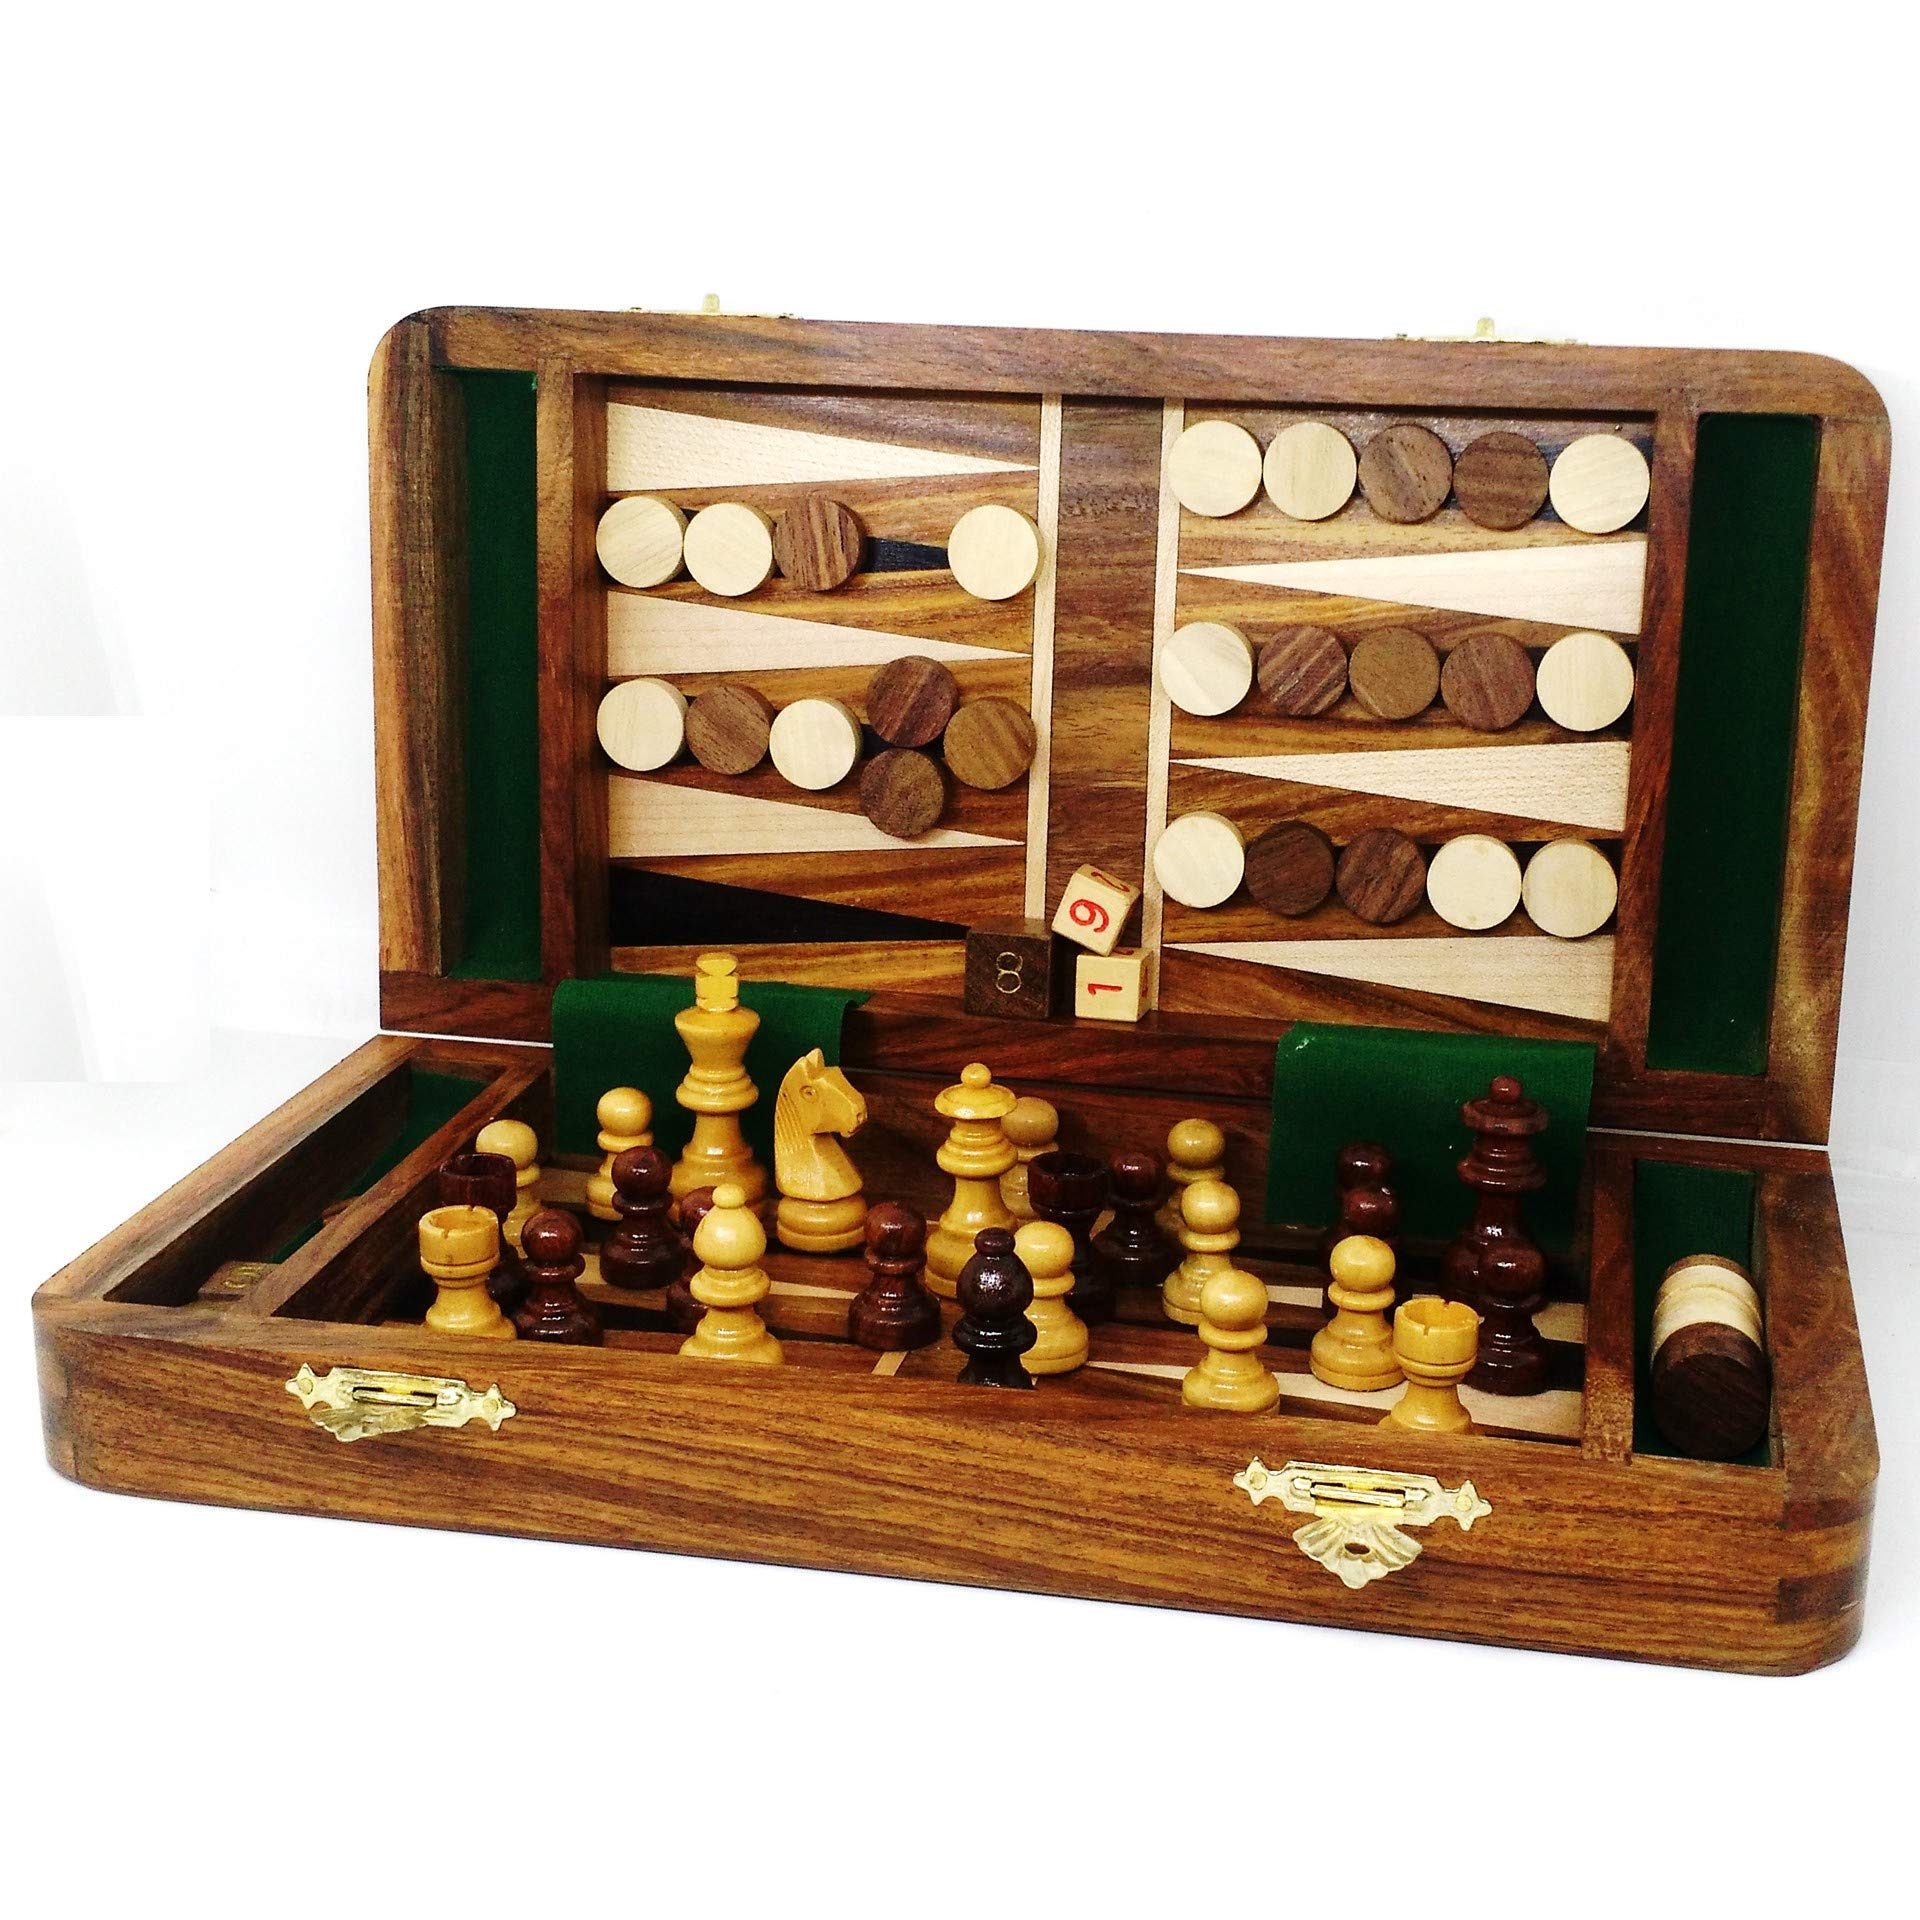 RoyalChessMall- 2 in 1 Magnetic Travel Chess & Backgammon Set in Golden Rosewood 10 inches